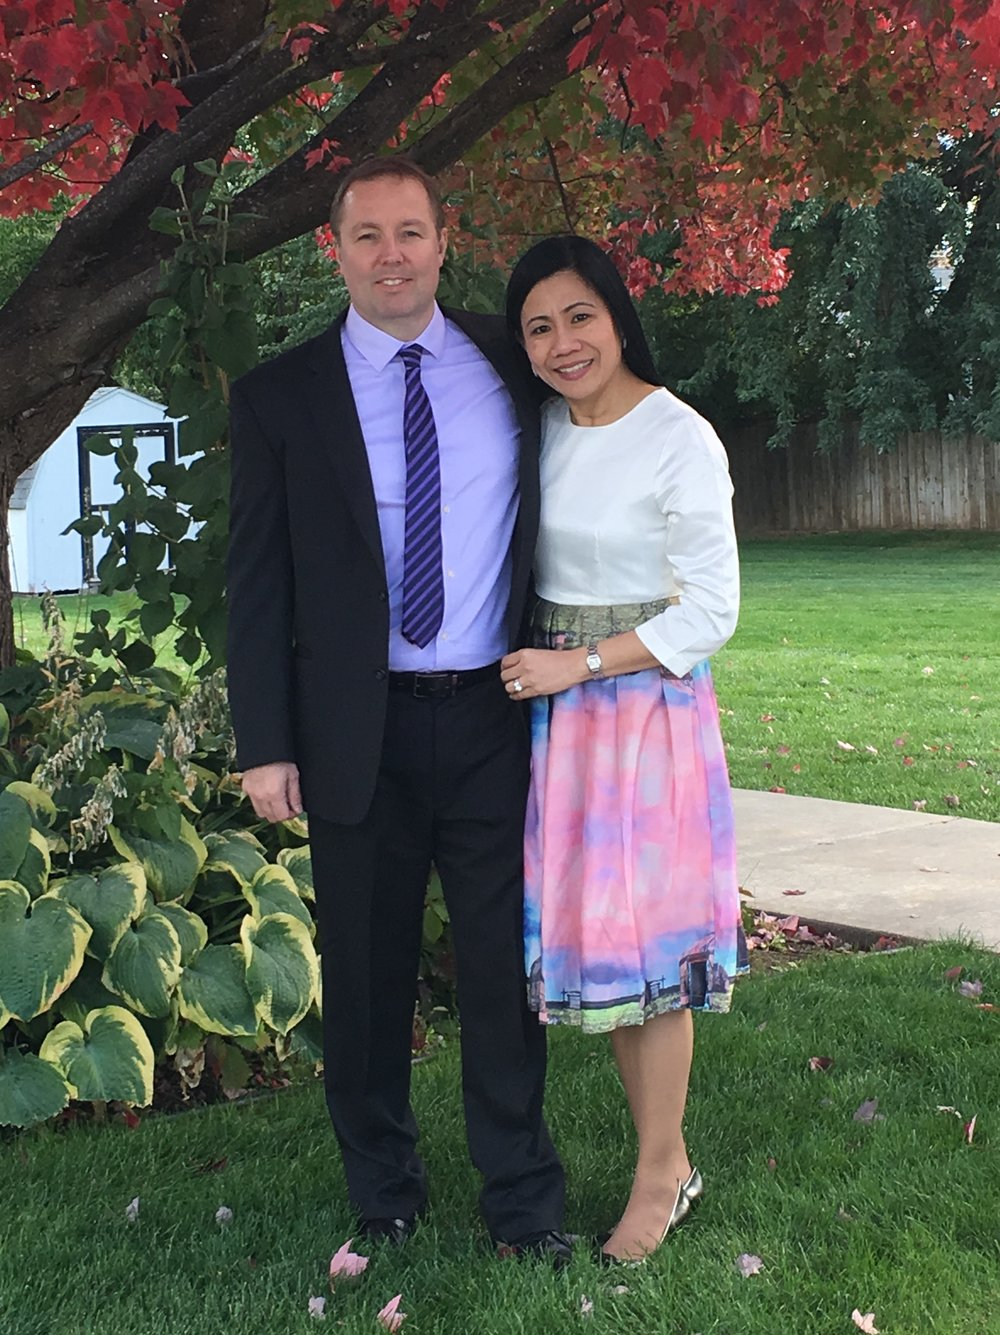 Pastor Patrick & wife Aura - together in the ministry, serving the Lord.